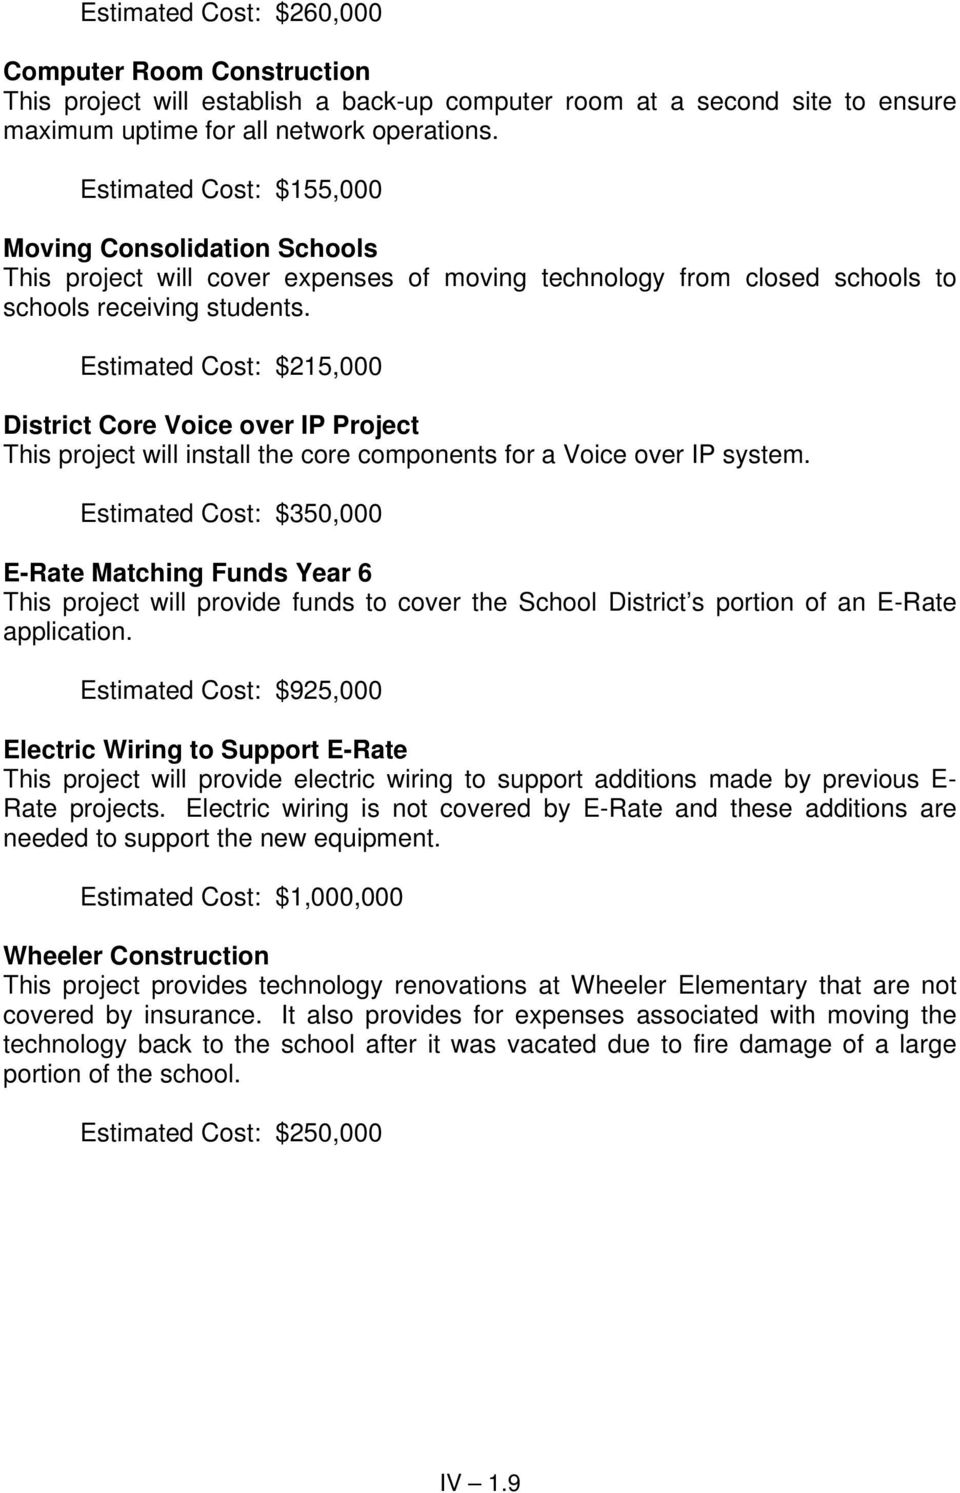 Estimated Cost: $215,000 District Core Voice over IP Project This project will install the core components for a Voice over IP system.